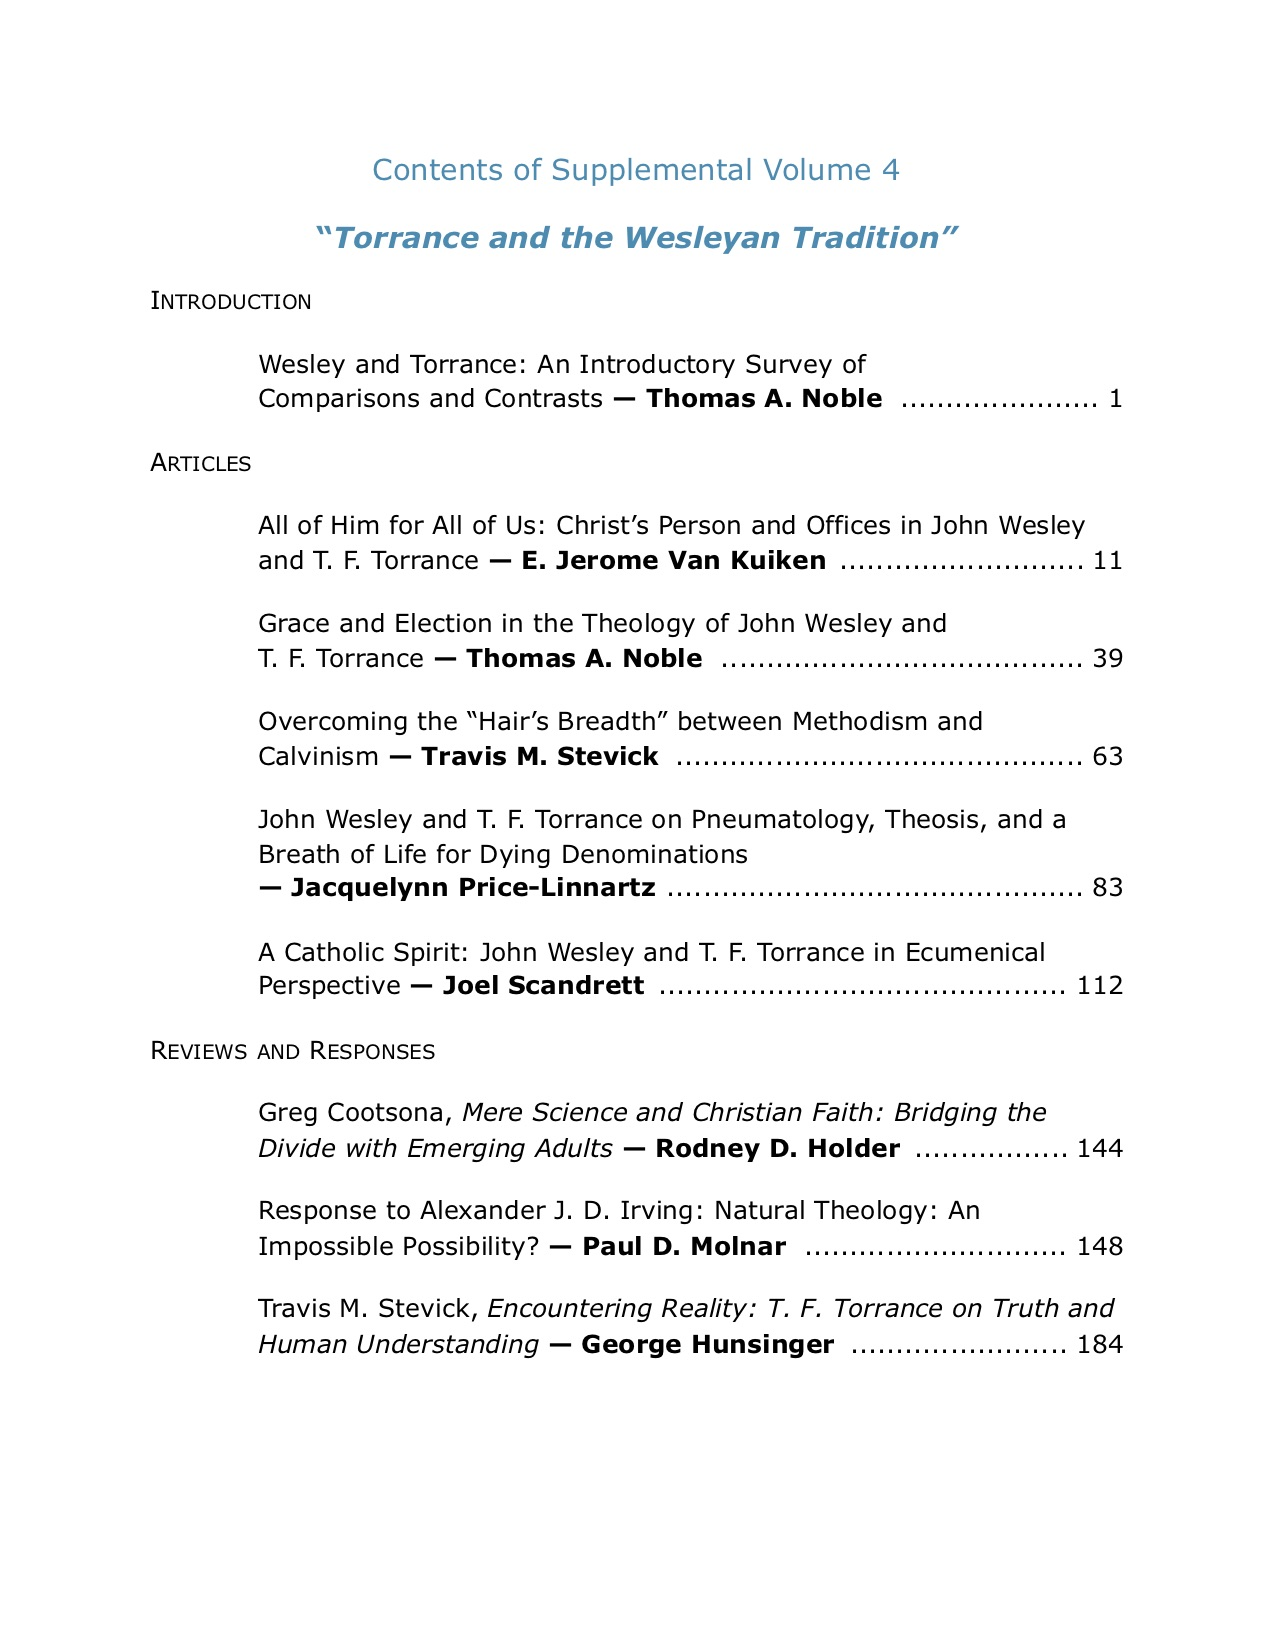 Participatio Supplemental Volume 4, table of contents